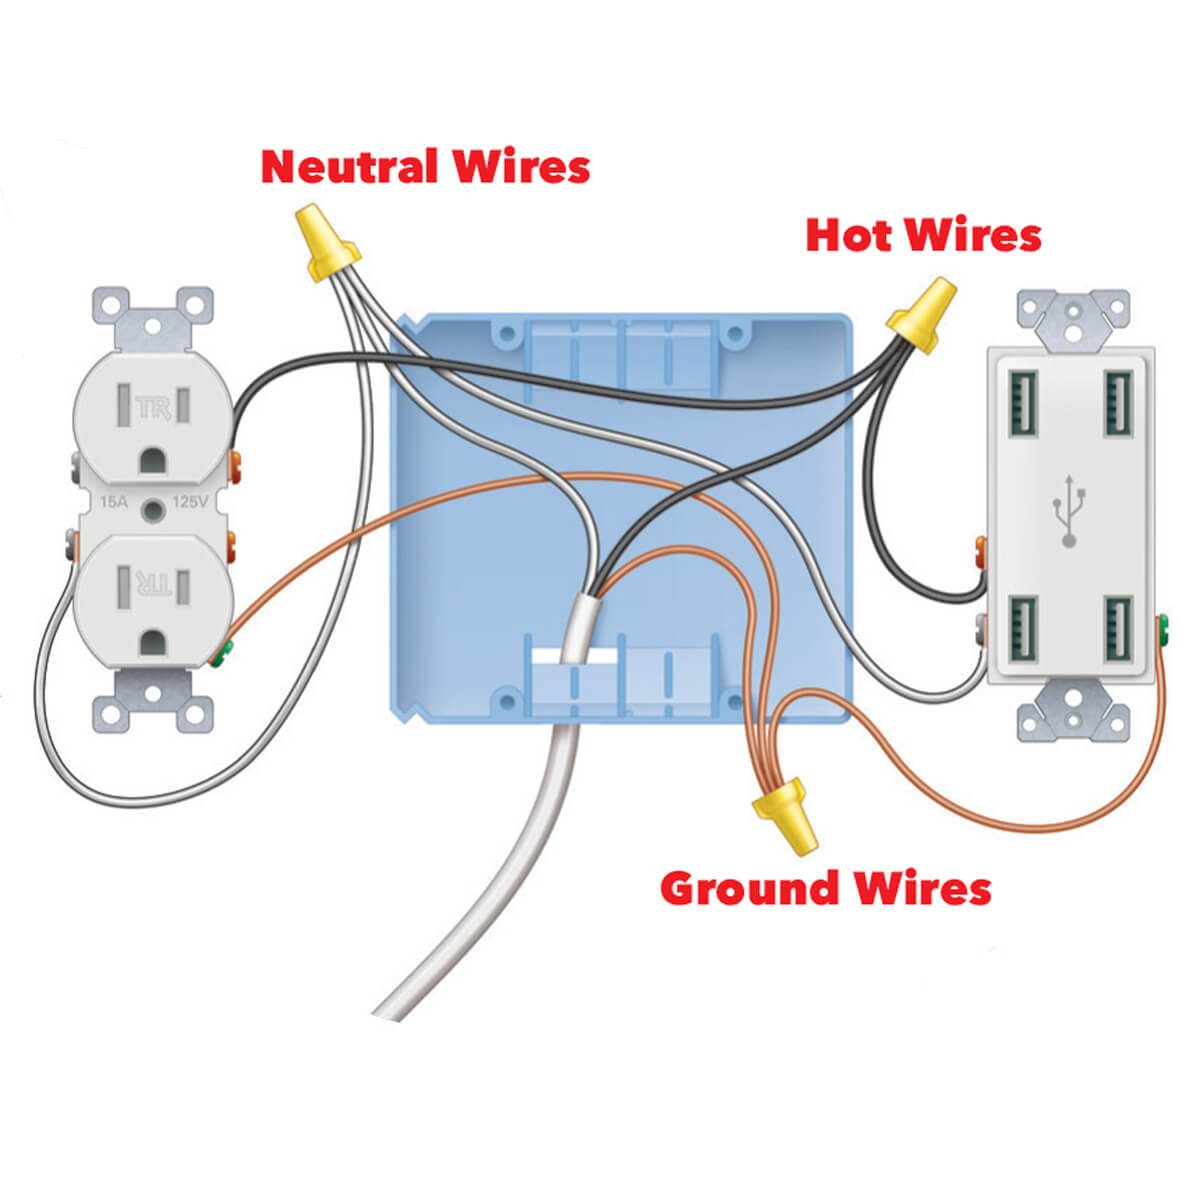 Wiring Diagram For Wall Outlet